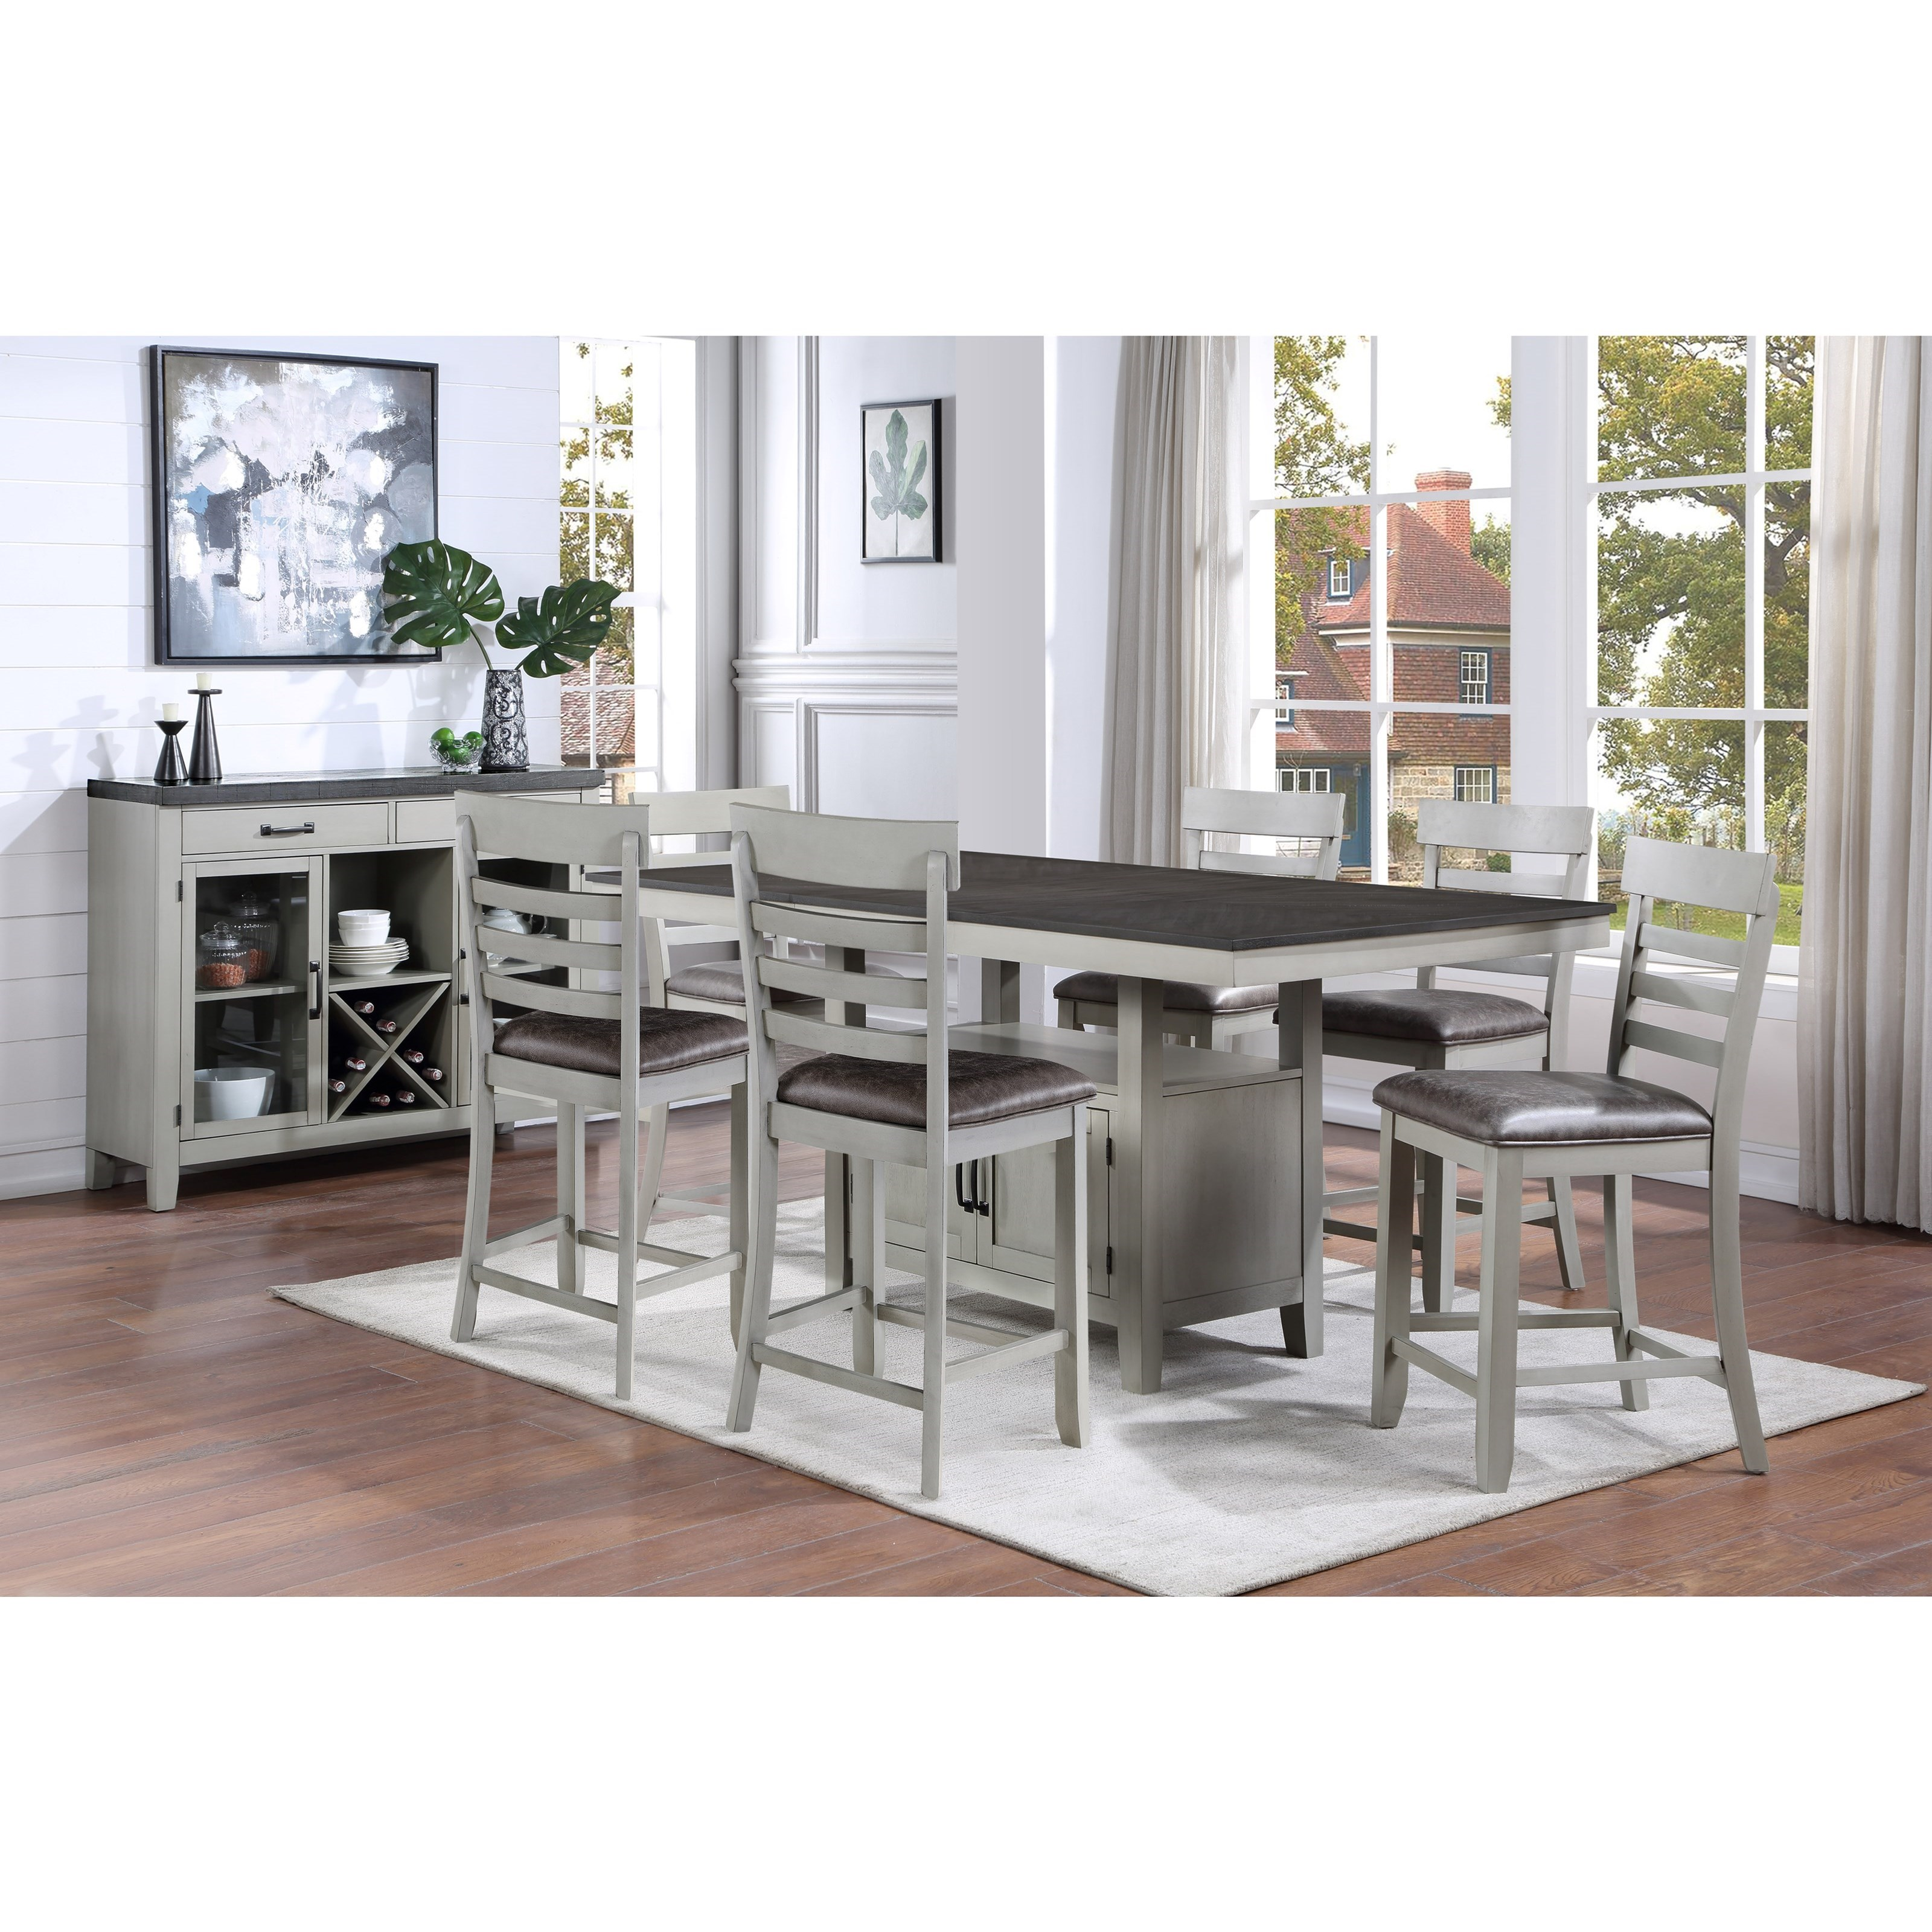 Hyland Dining Room Group by Steve Silver at Northeast Factory Direct